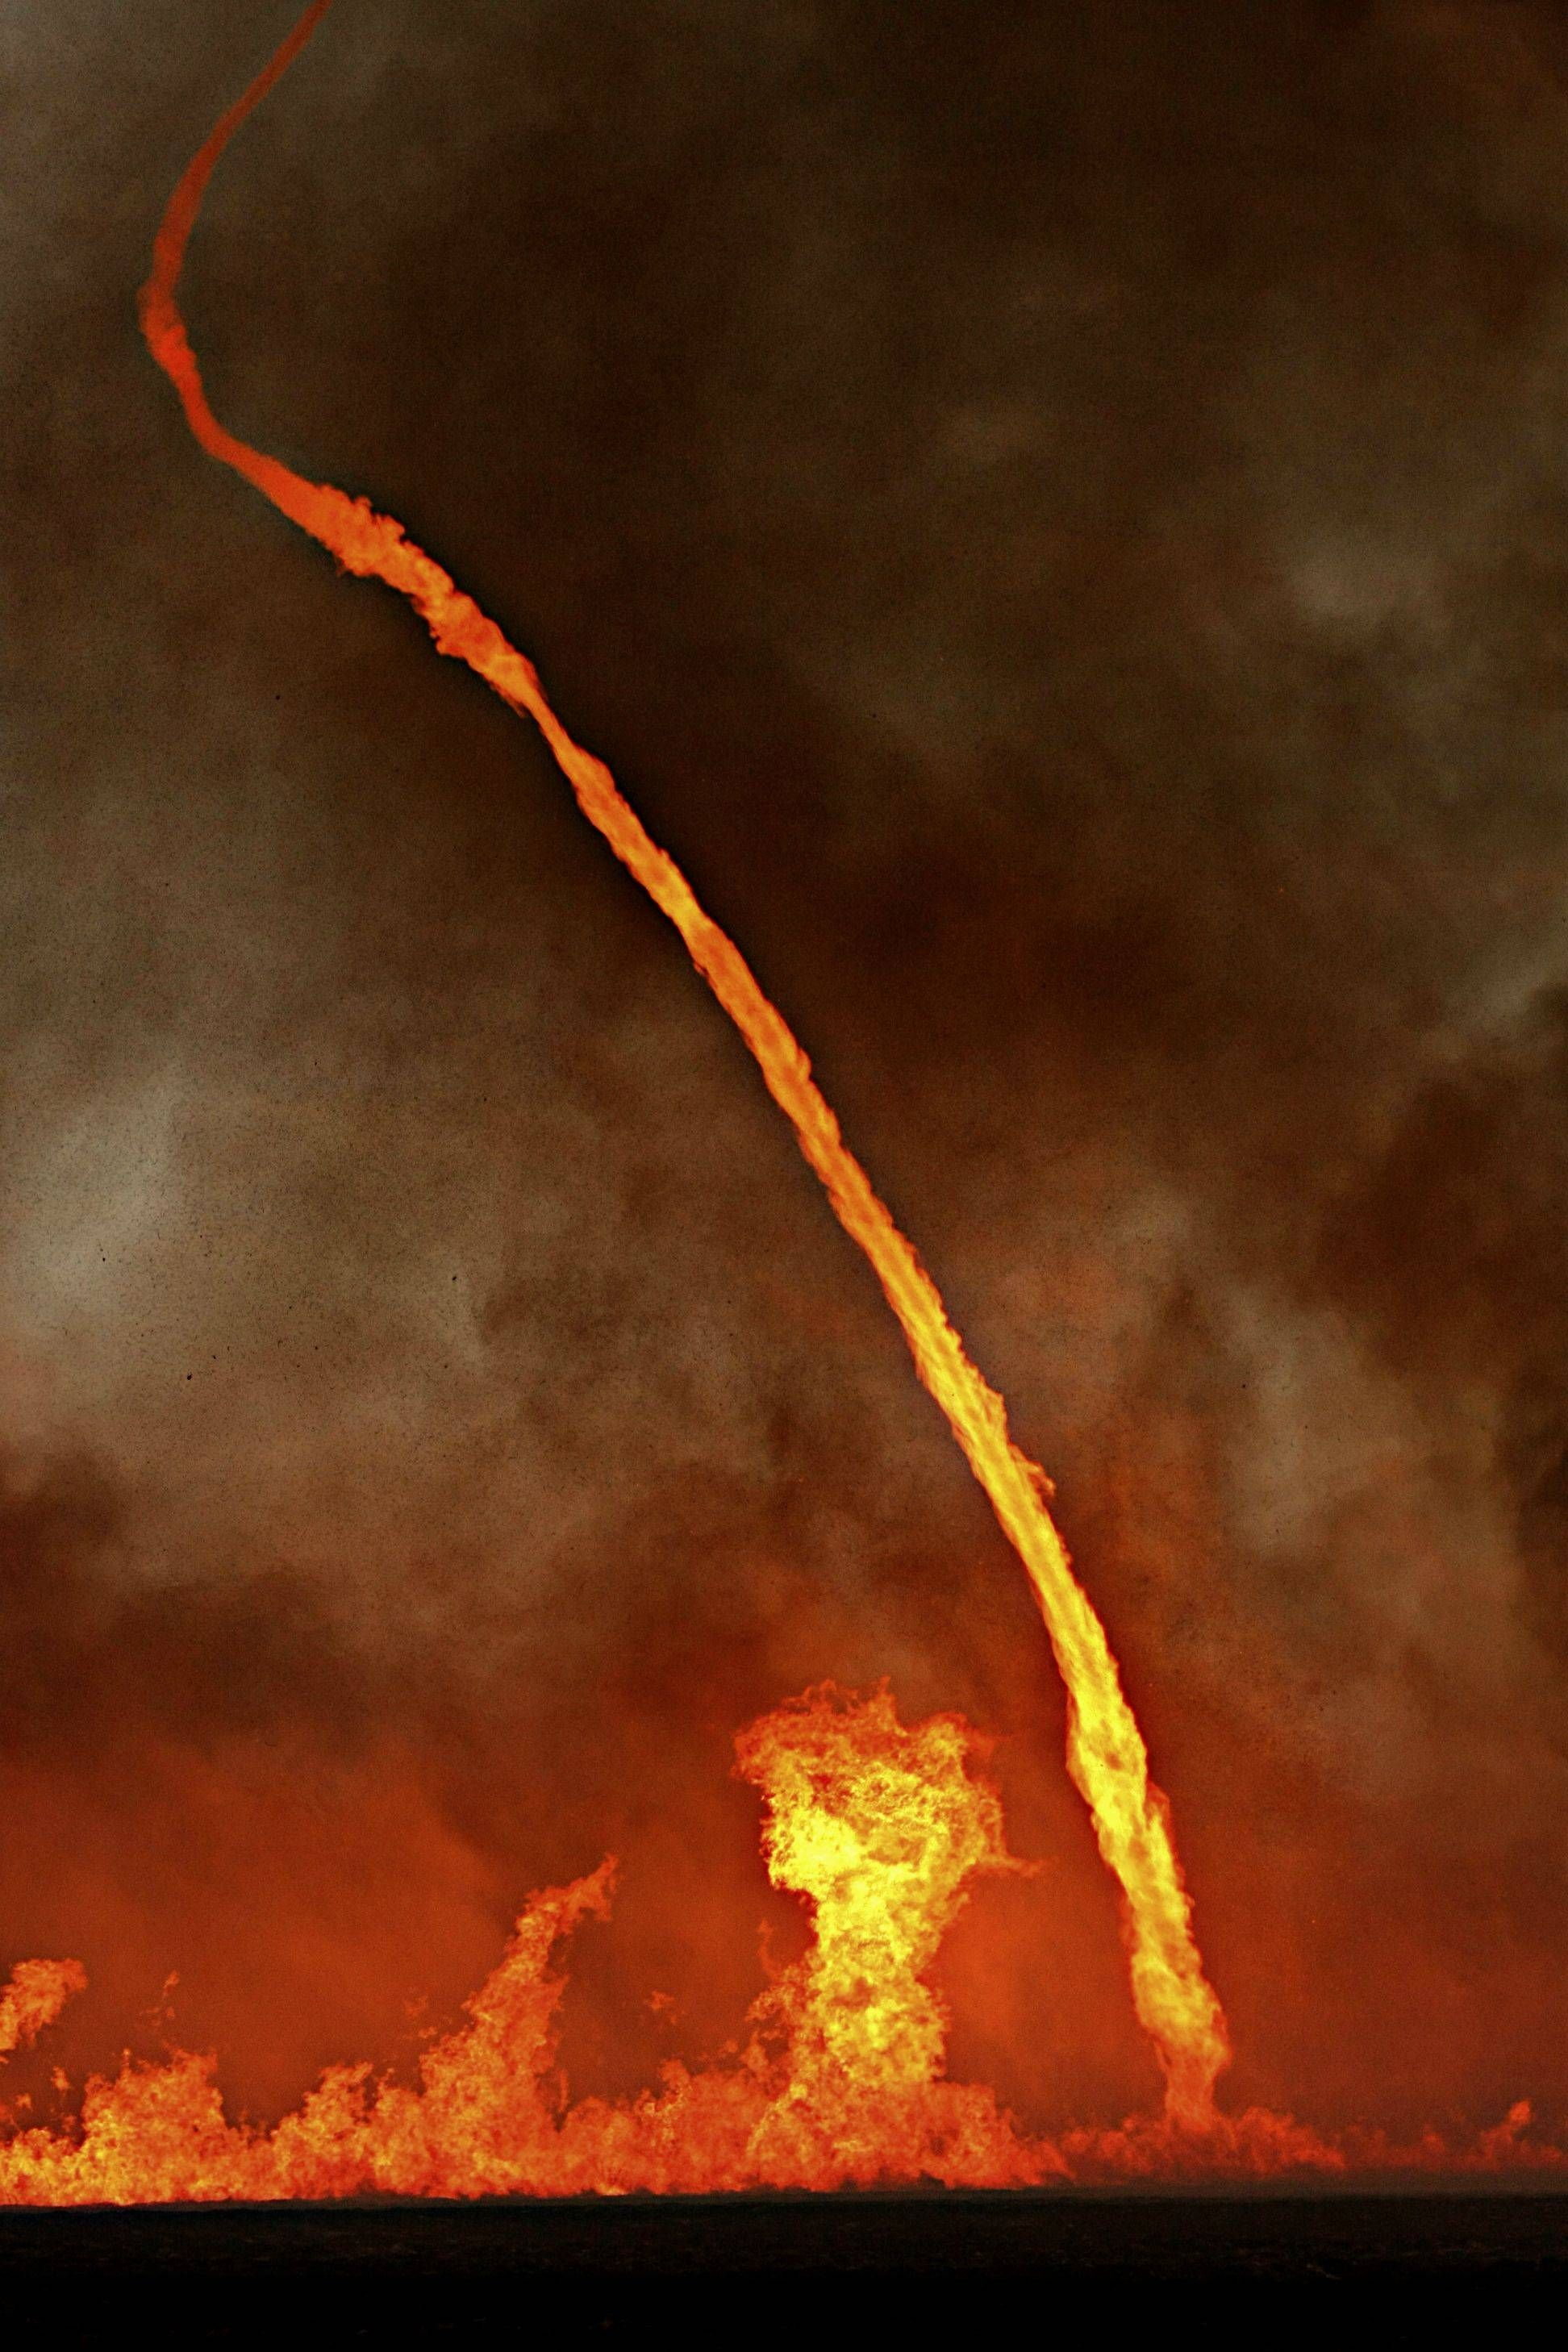 Oh Australia Fire Tornadoes Really You Crazy Pinteres - This slow motion fire tornado is the coolest thing youll see all day